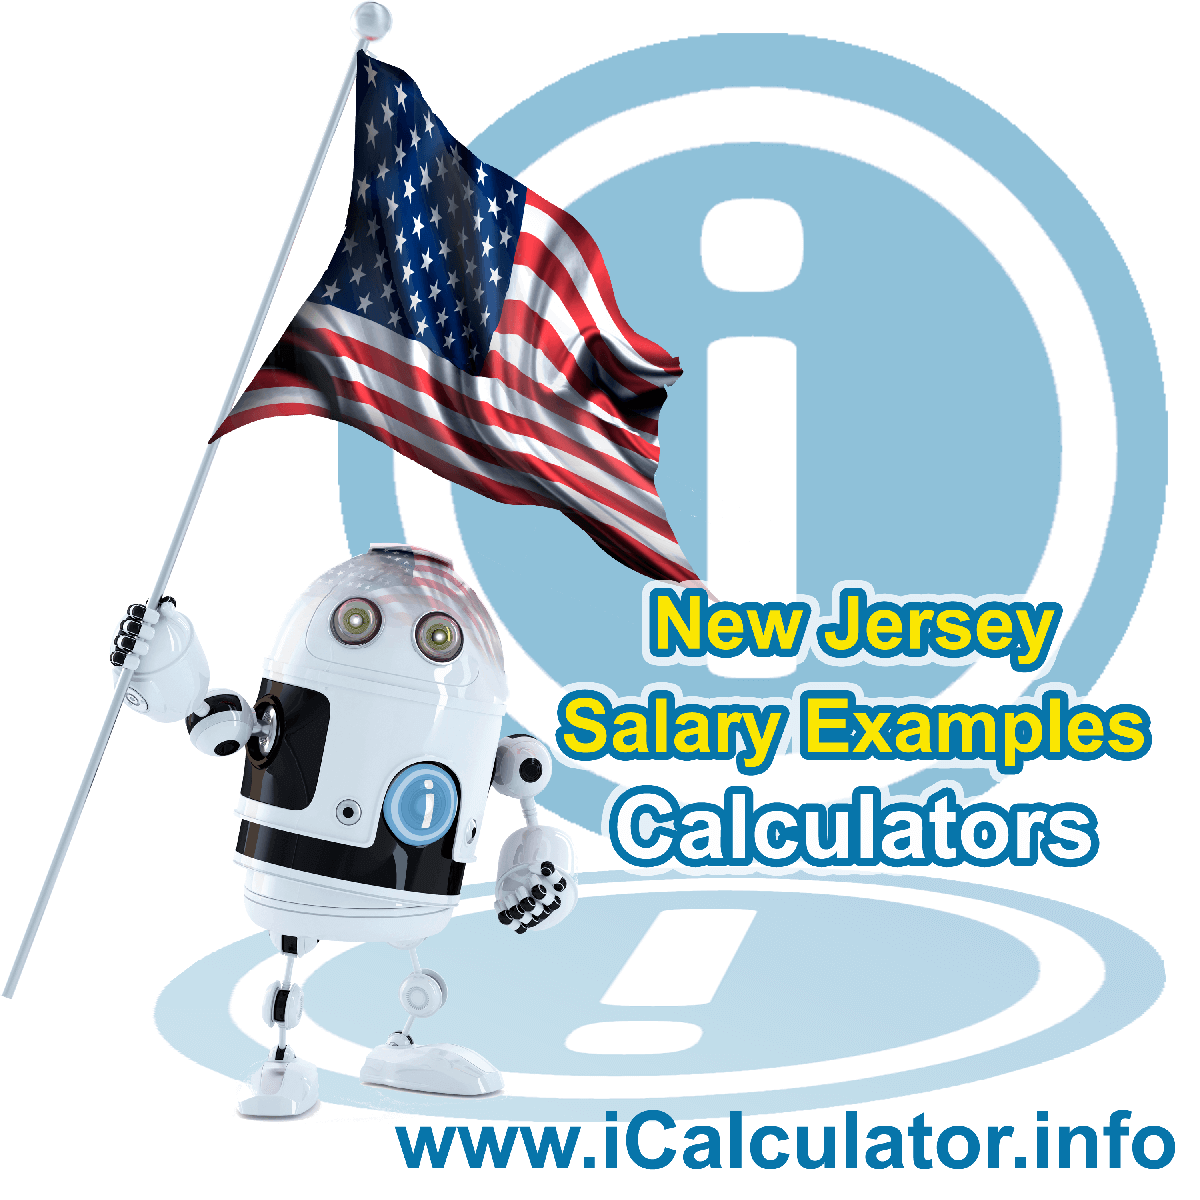 New Jersey Salary Example for $120.00 in 2020 | iCalculator | $120.00 salary example for employee and employer paying New Jersey State tincome taxes. Detailed salary after tax calculation including New Jersey State Tax, Federal State Tax, Medicare Deductions, Social Security, Capital Gains and other income tax and salary deductions complete with supporting New Jersey state tax tables